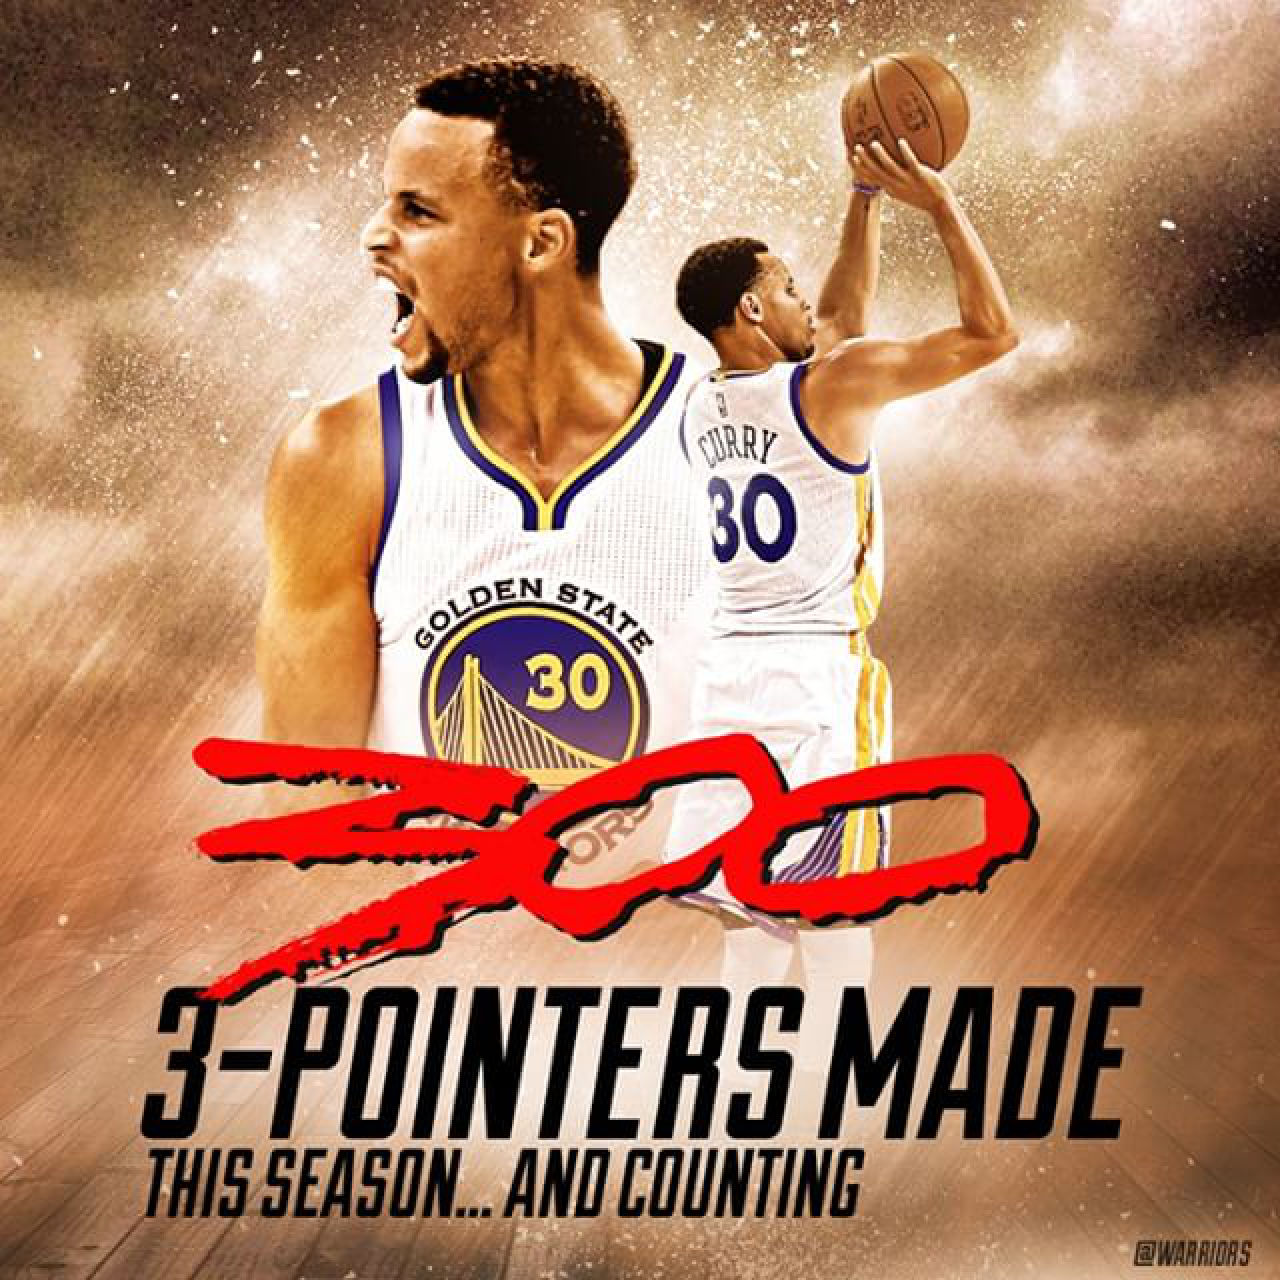 Steph Curry 300 3-pointers... and counting